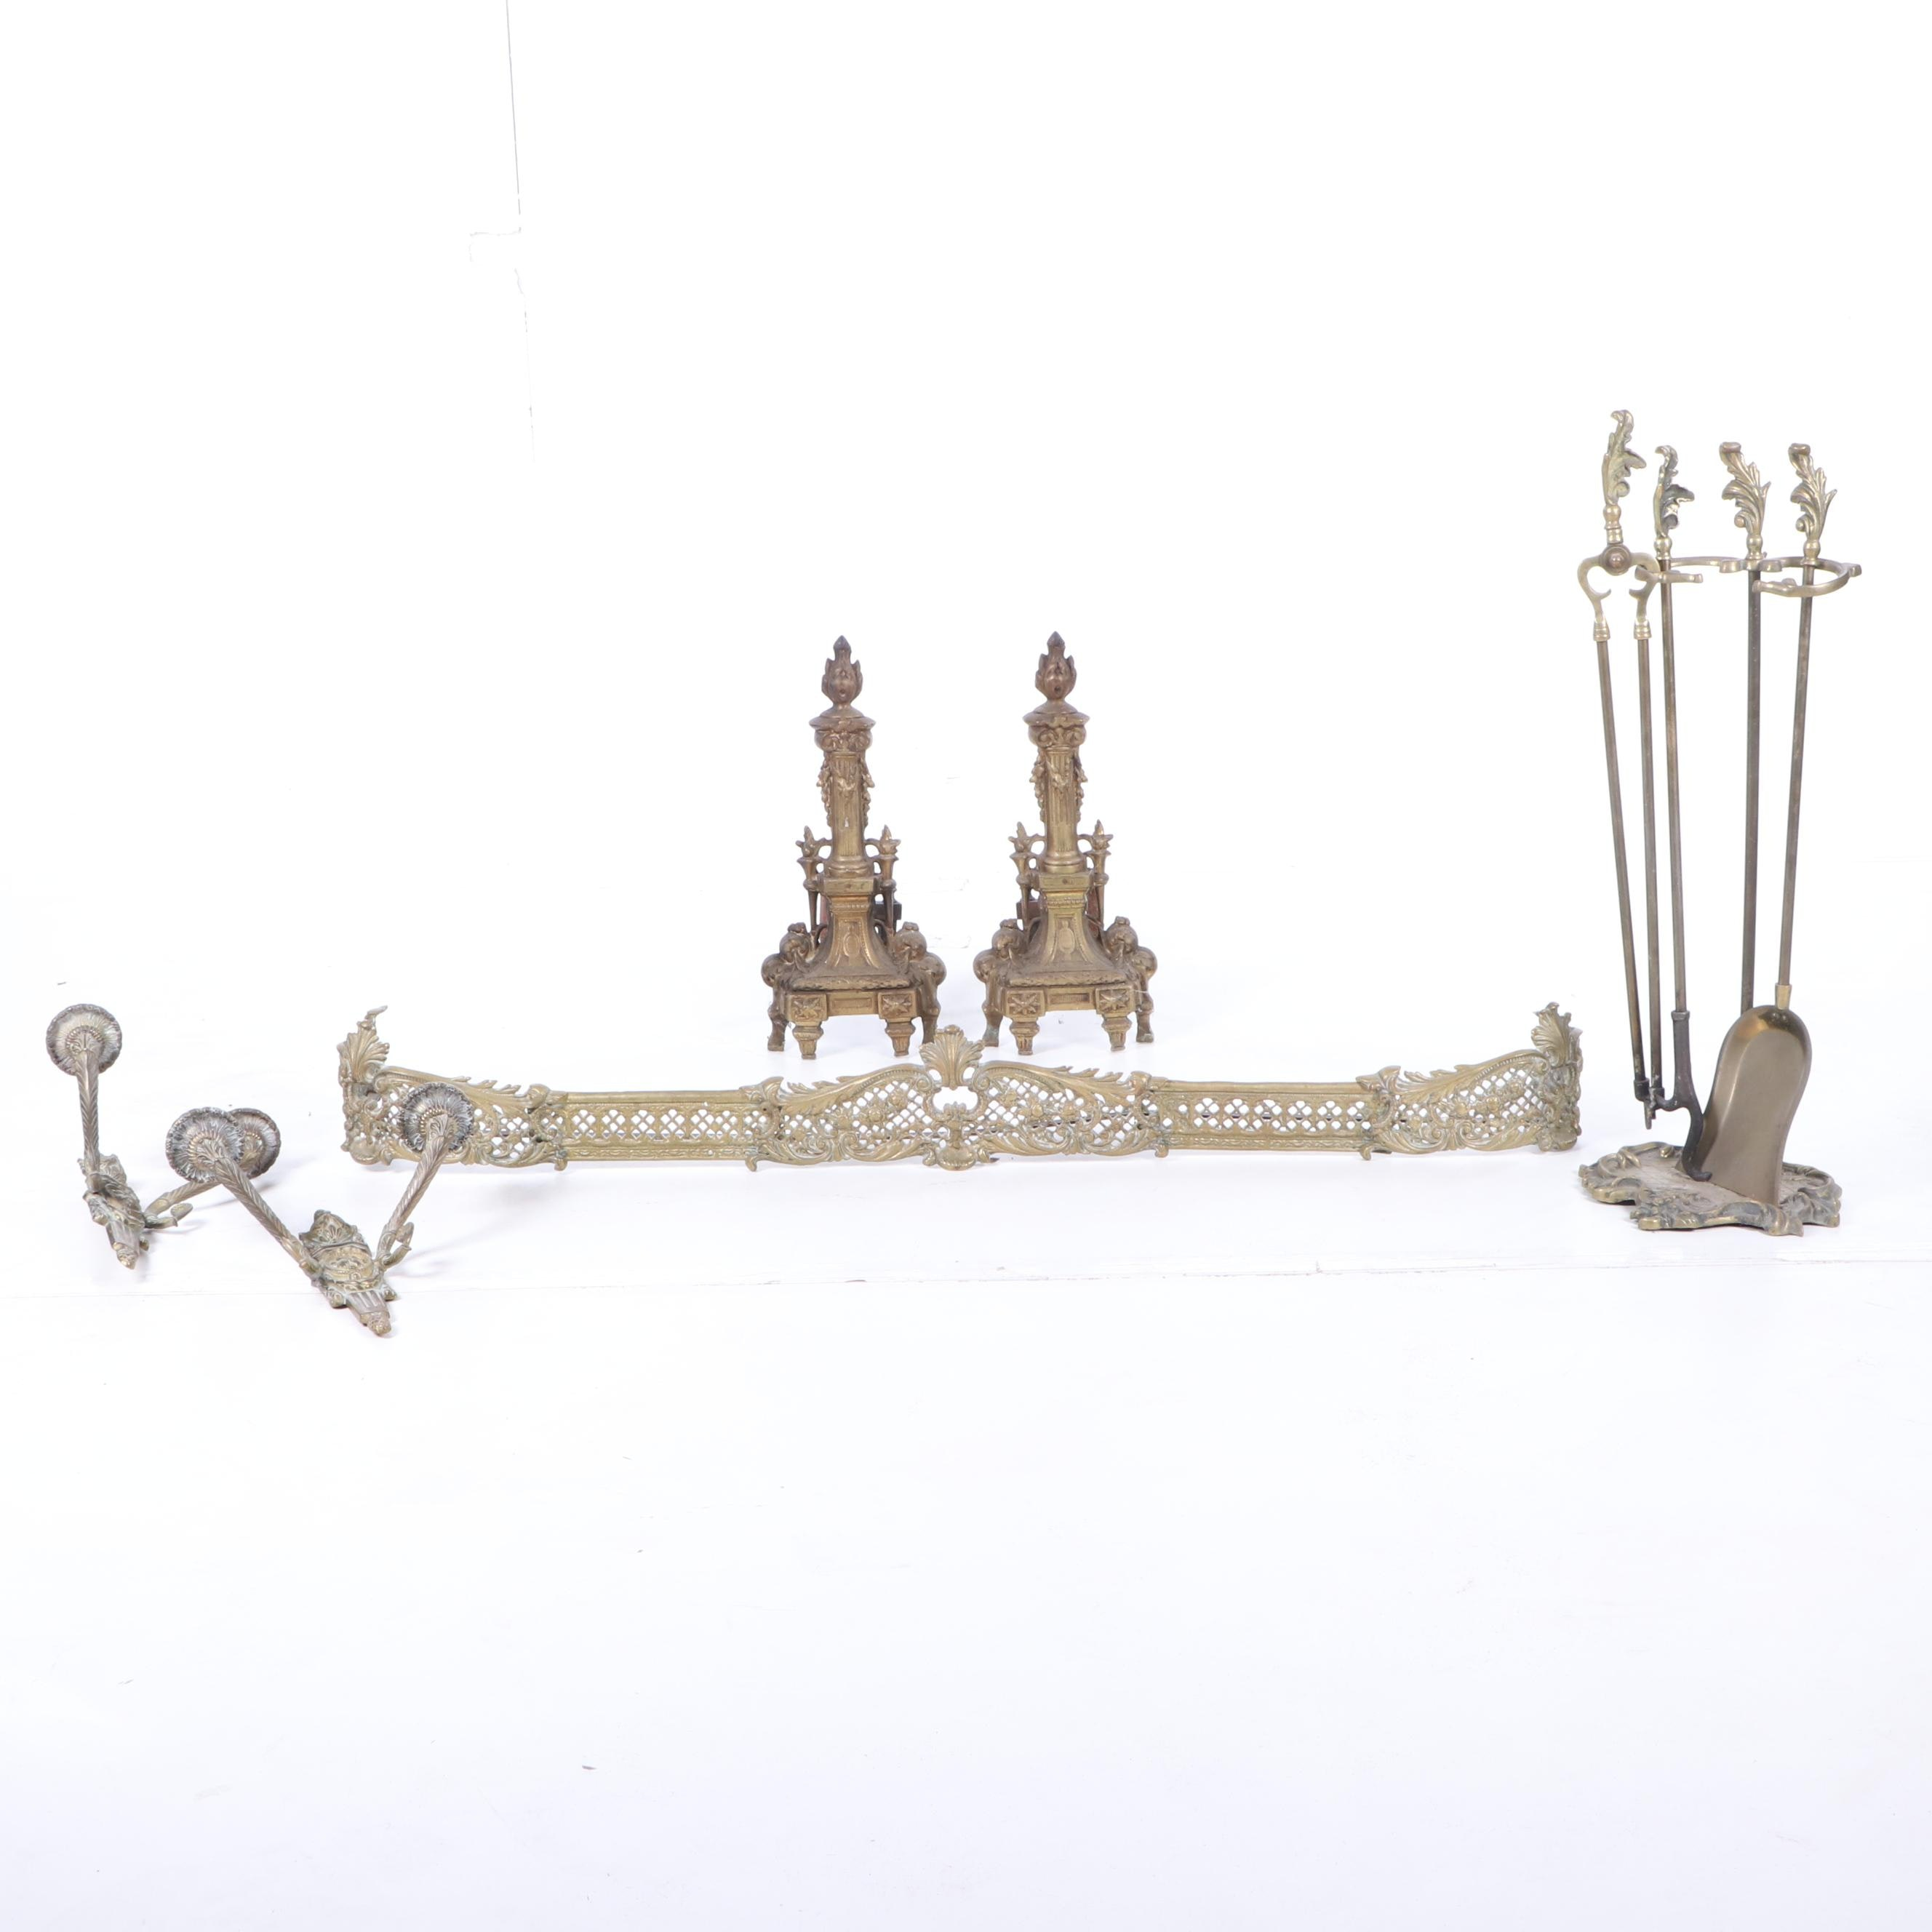 French Rococo Torch Andirons with Tool Set and Fender